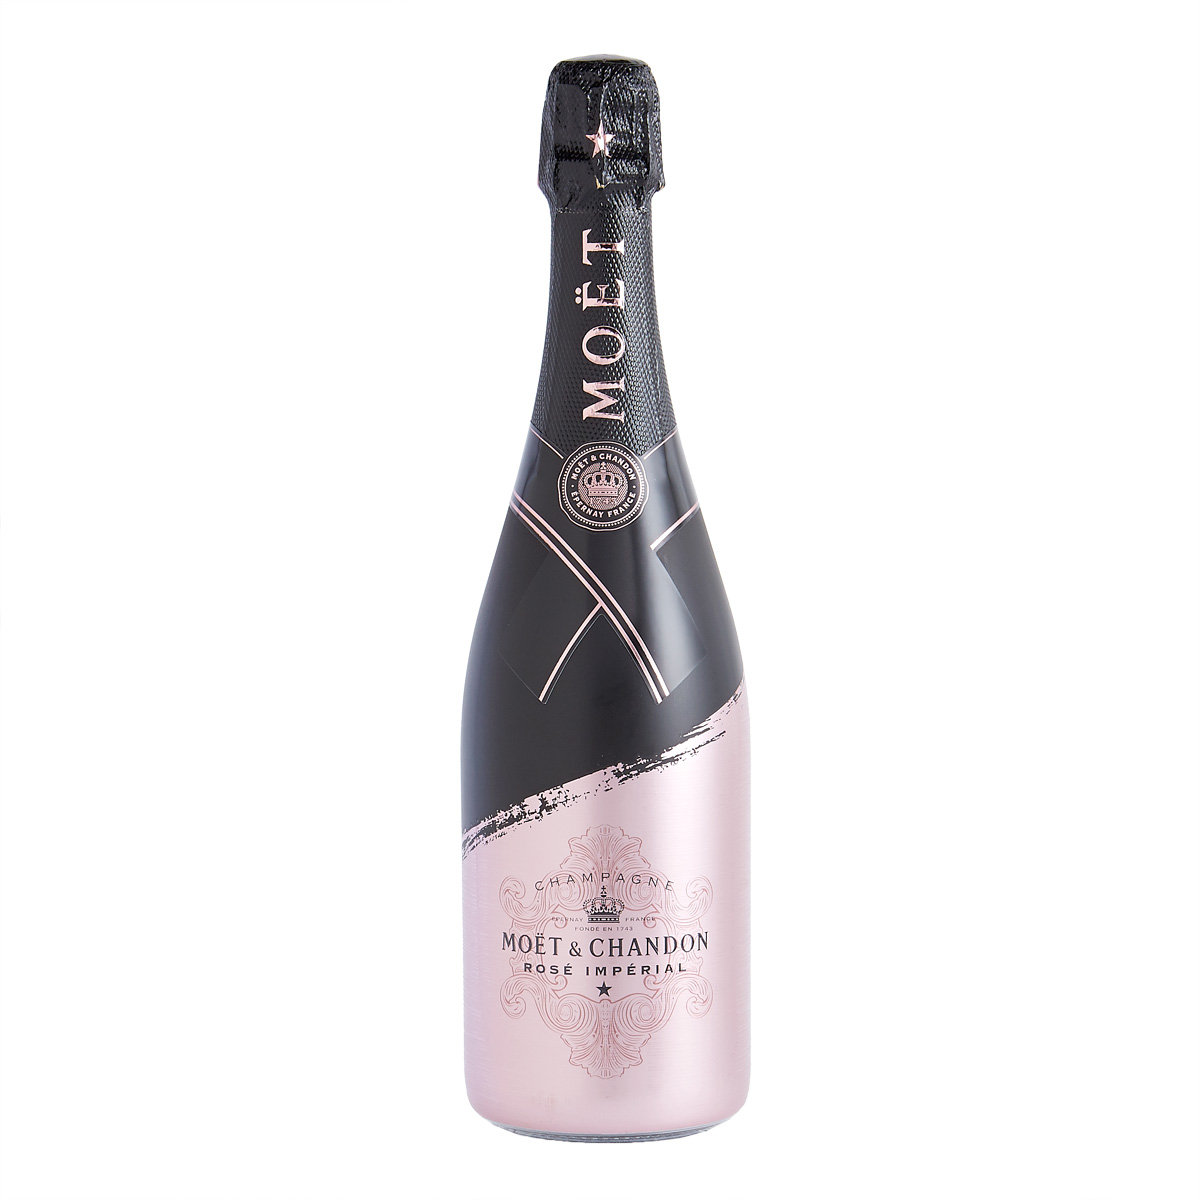 Imperial Rose Signature 2020 Limited Edition Bottle